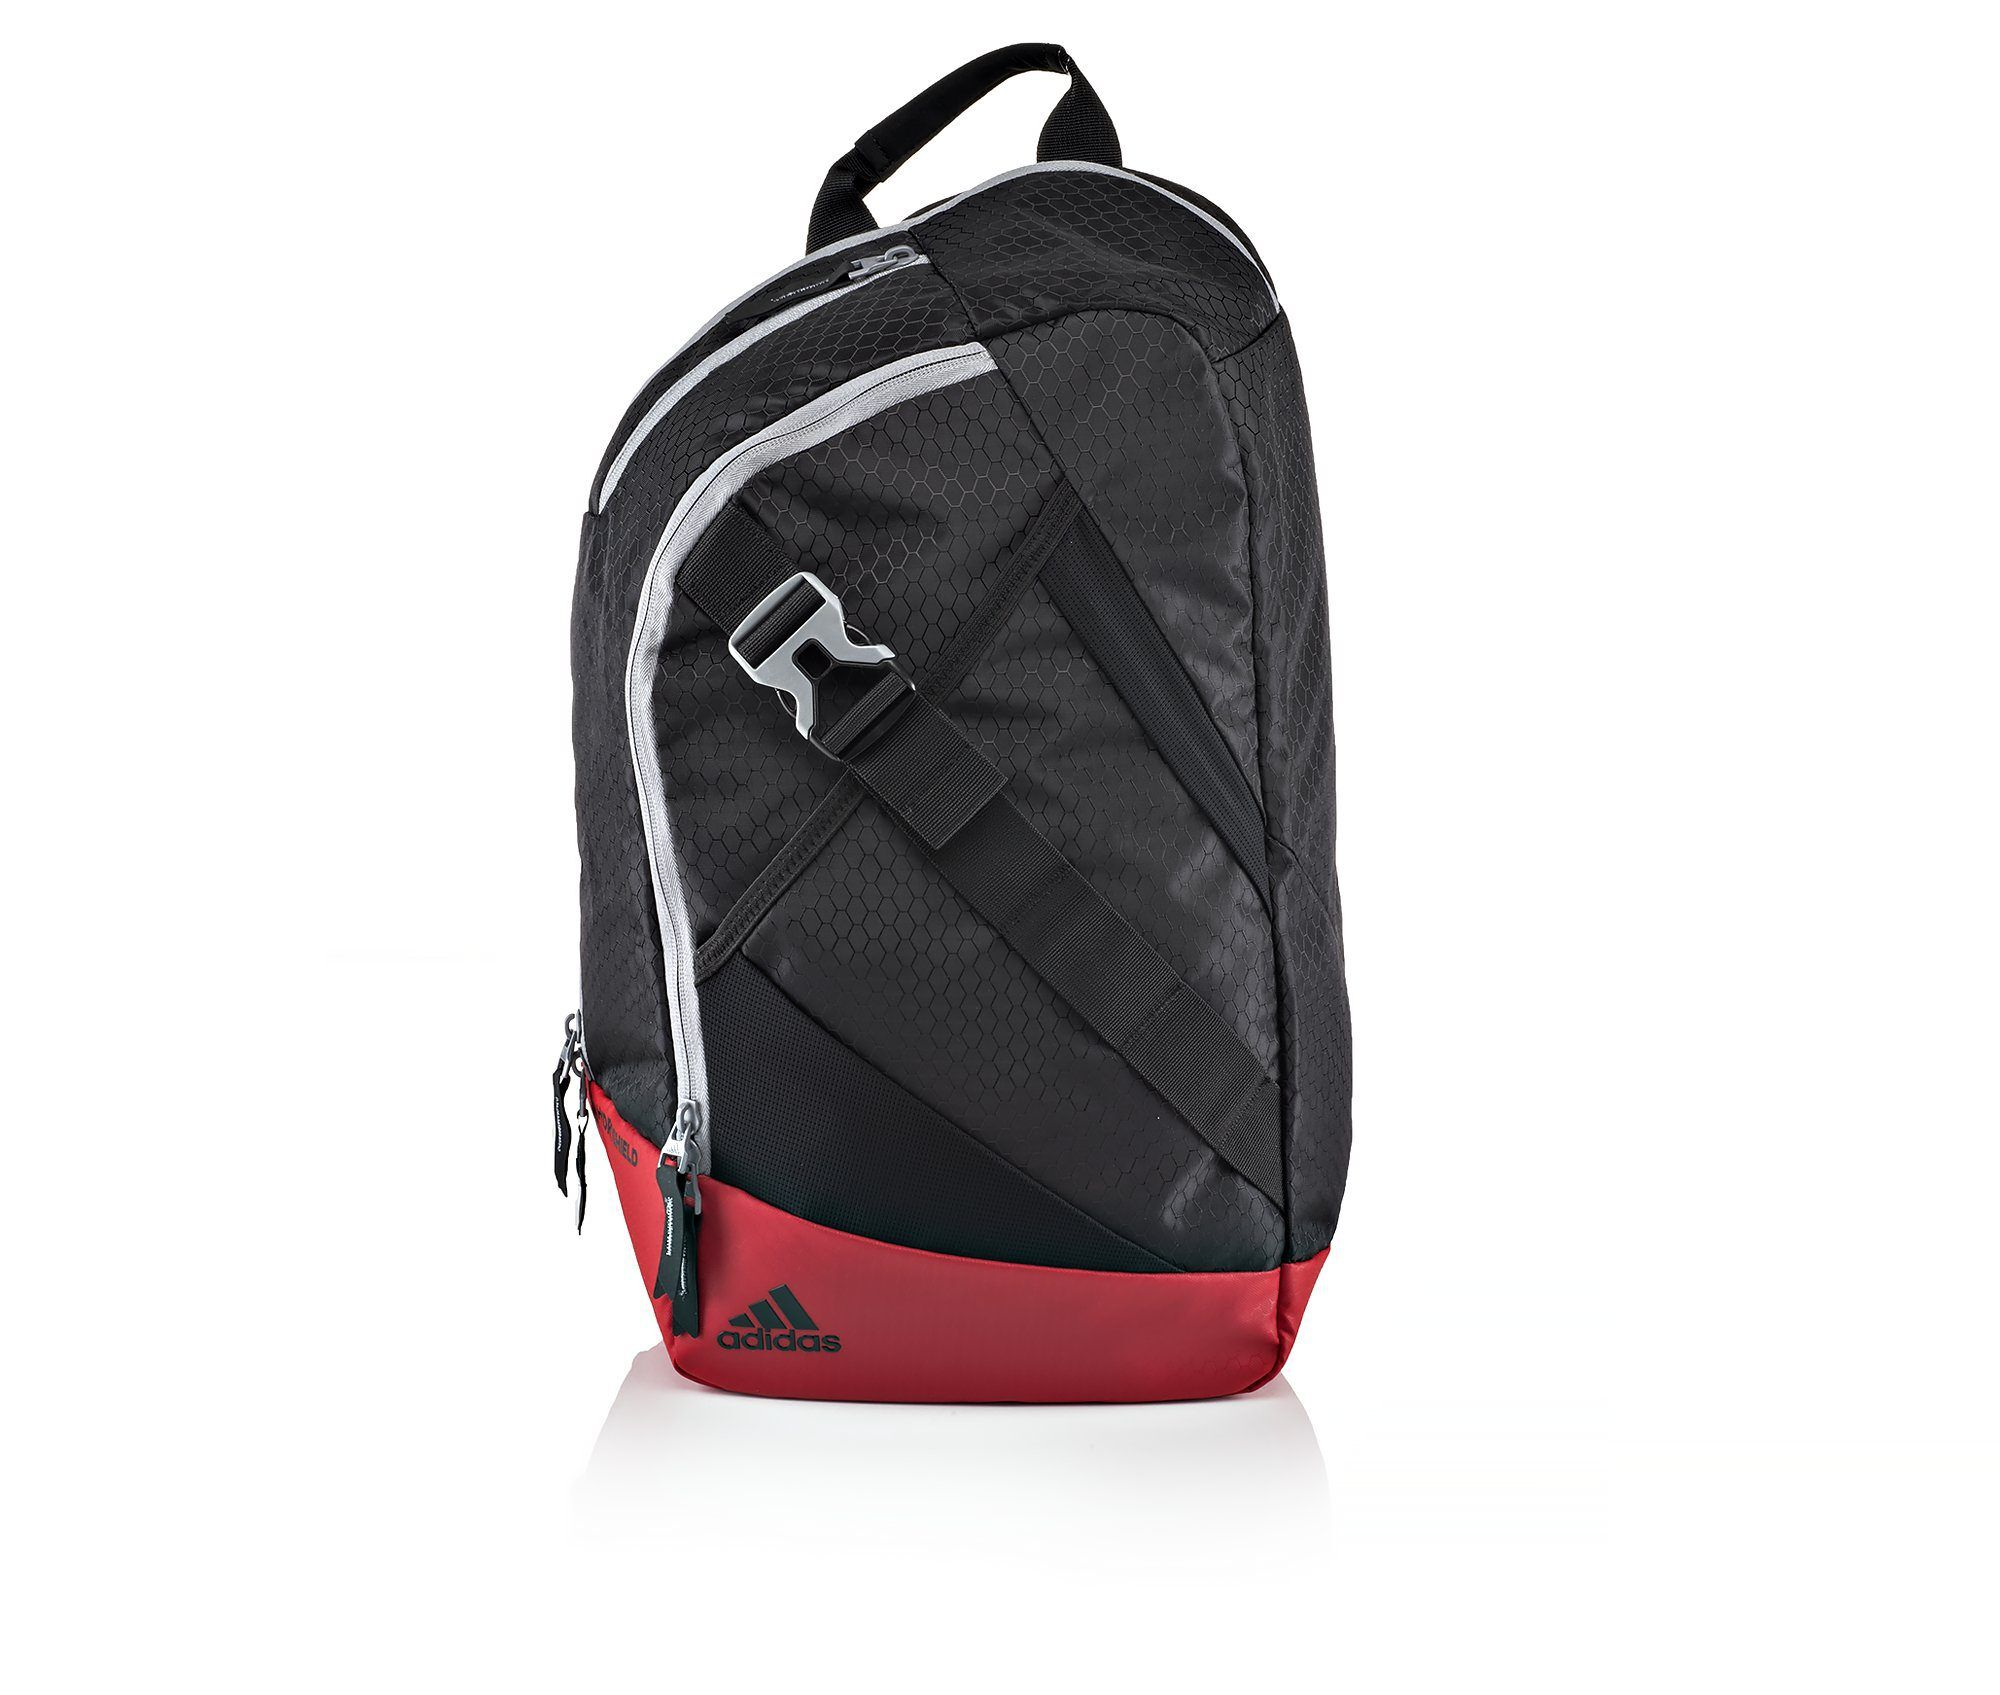 4308933503 Adidas Sling Backpack Bags Adidas Moves Body Fragrance